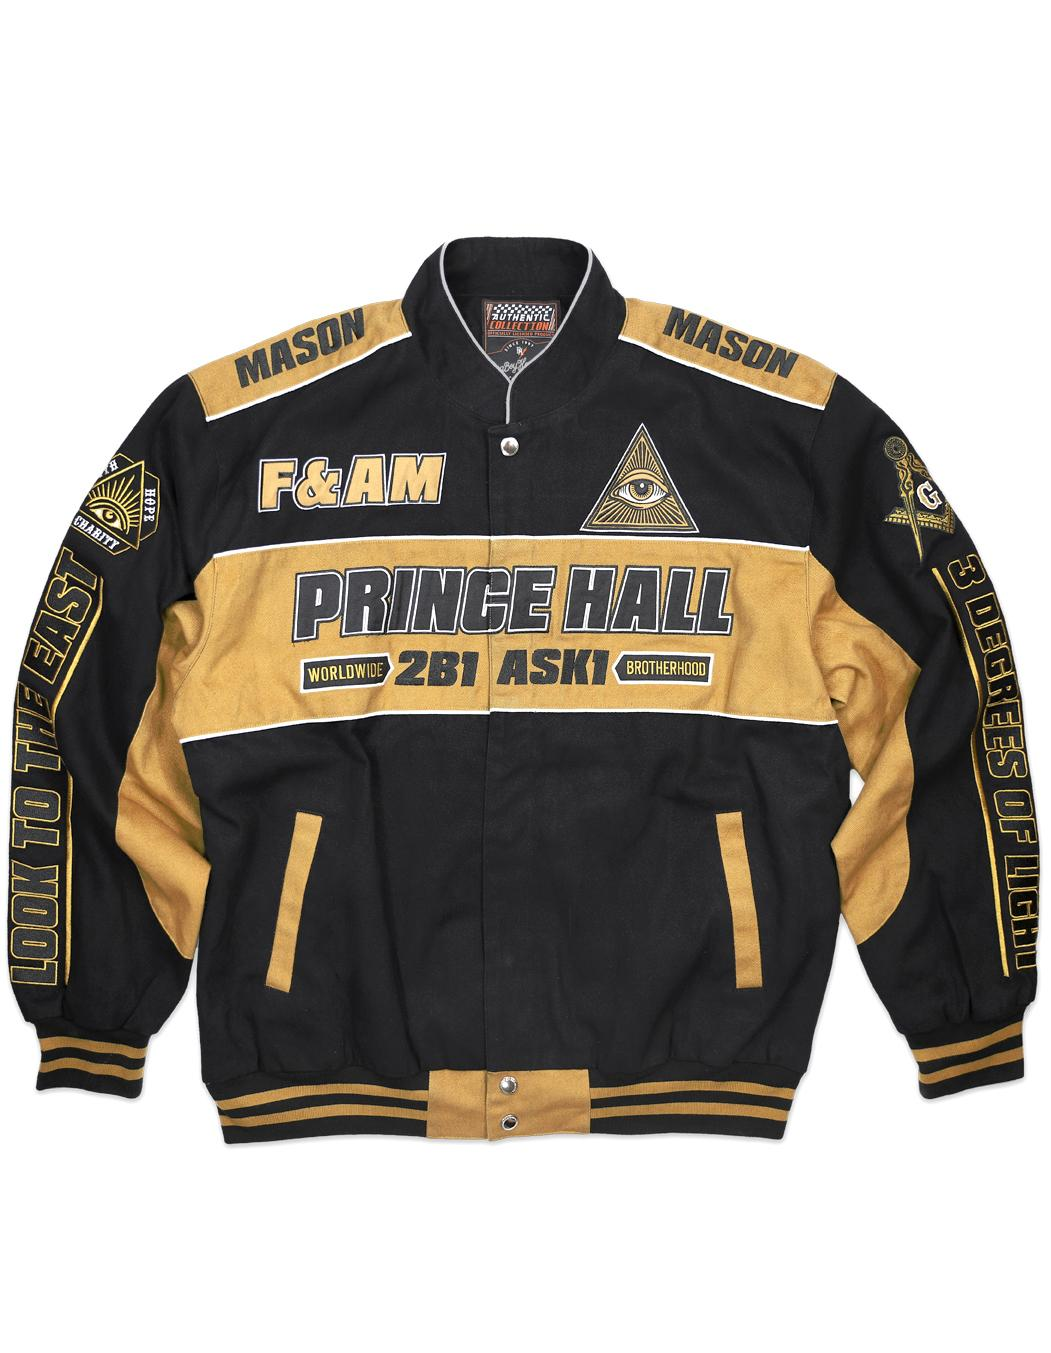 Freemason apparel Racing Jacket prince hall